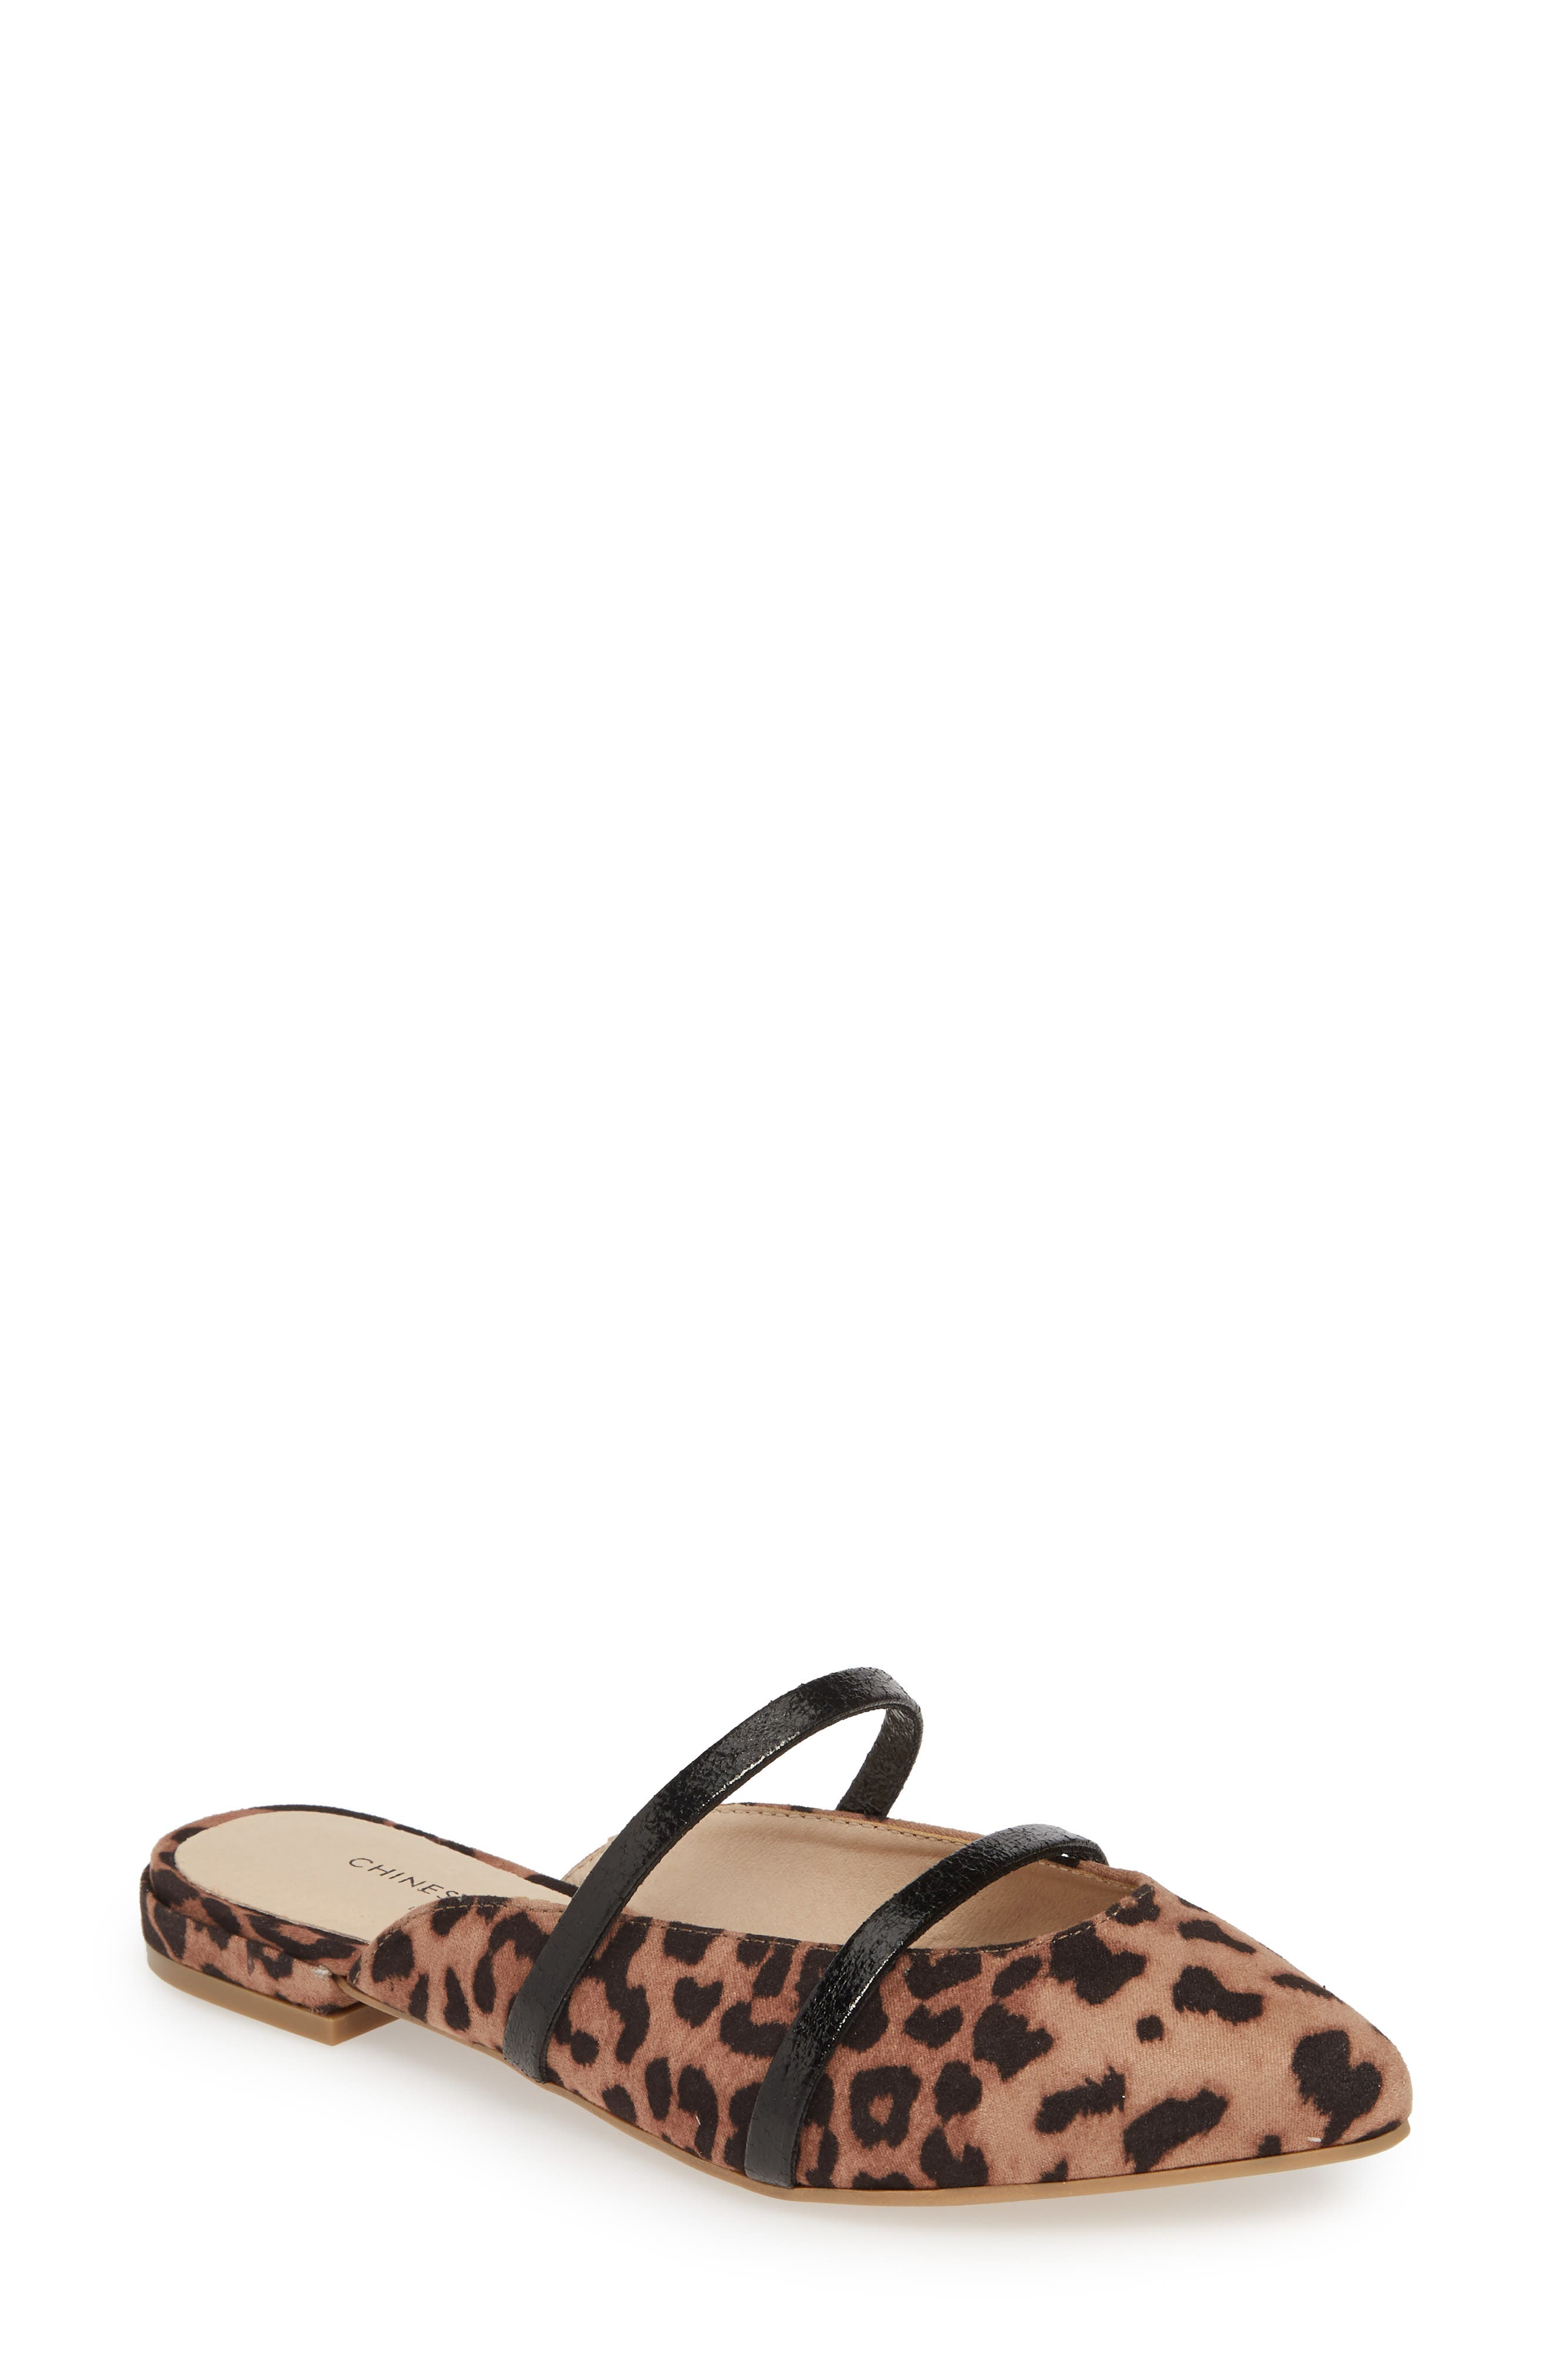 Chinese Laundry Graceland Mule, Brown